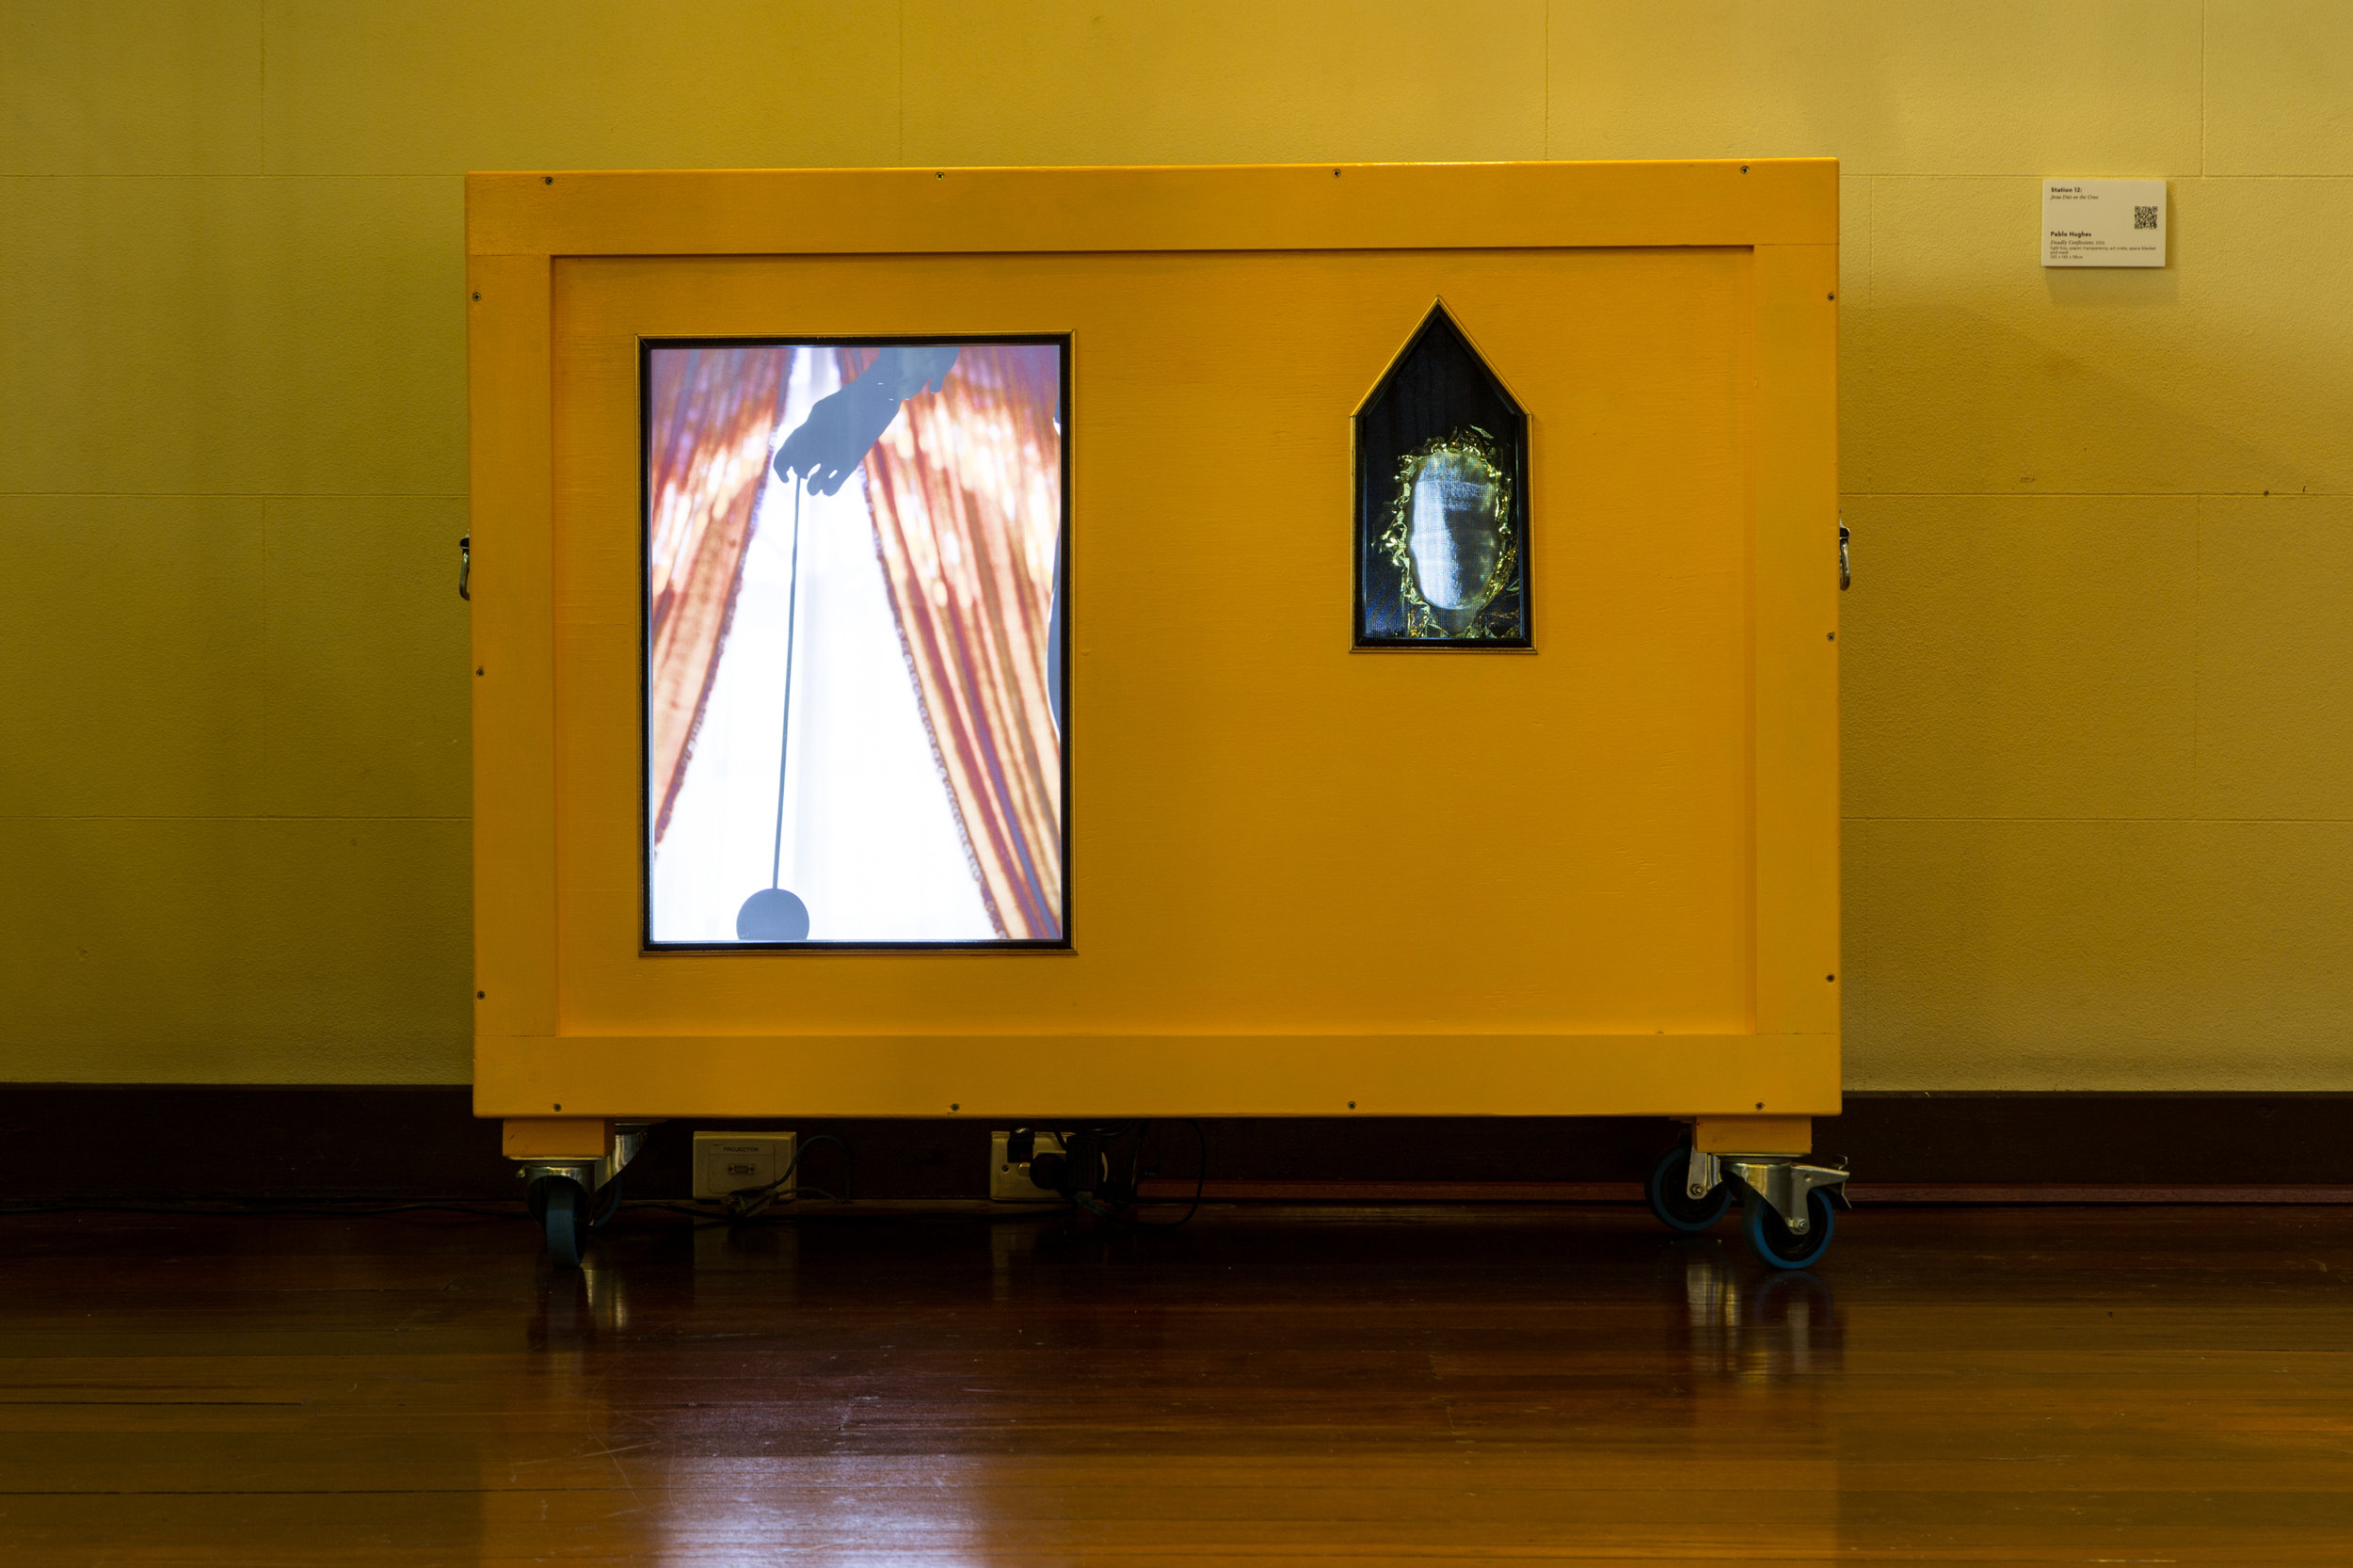 Station 12: Jesus Dies on the Cross  Pablo Hughes  Deadly Confessions  2016, Light box, paper, transparency (Kodak), art crate, space blanket and mesh 120 x 143 x 58cm